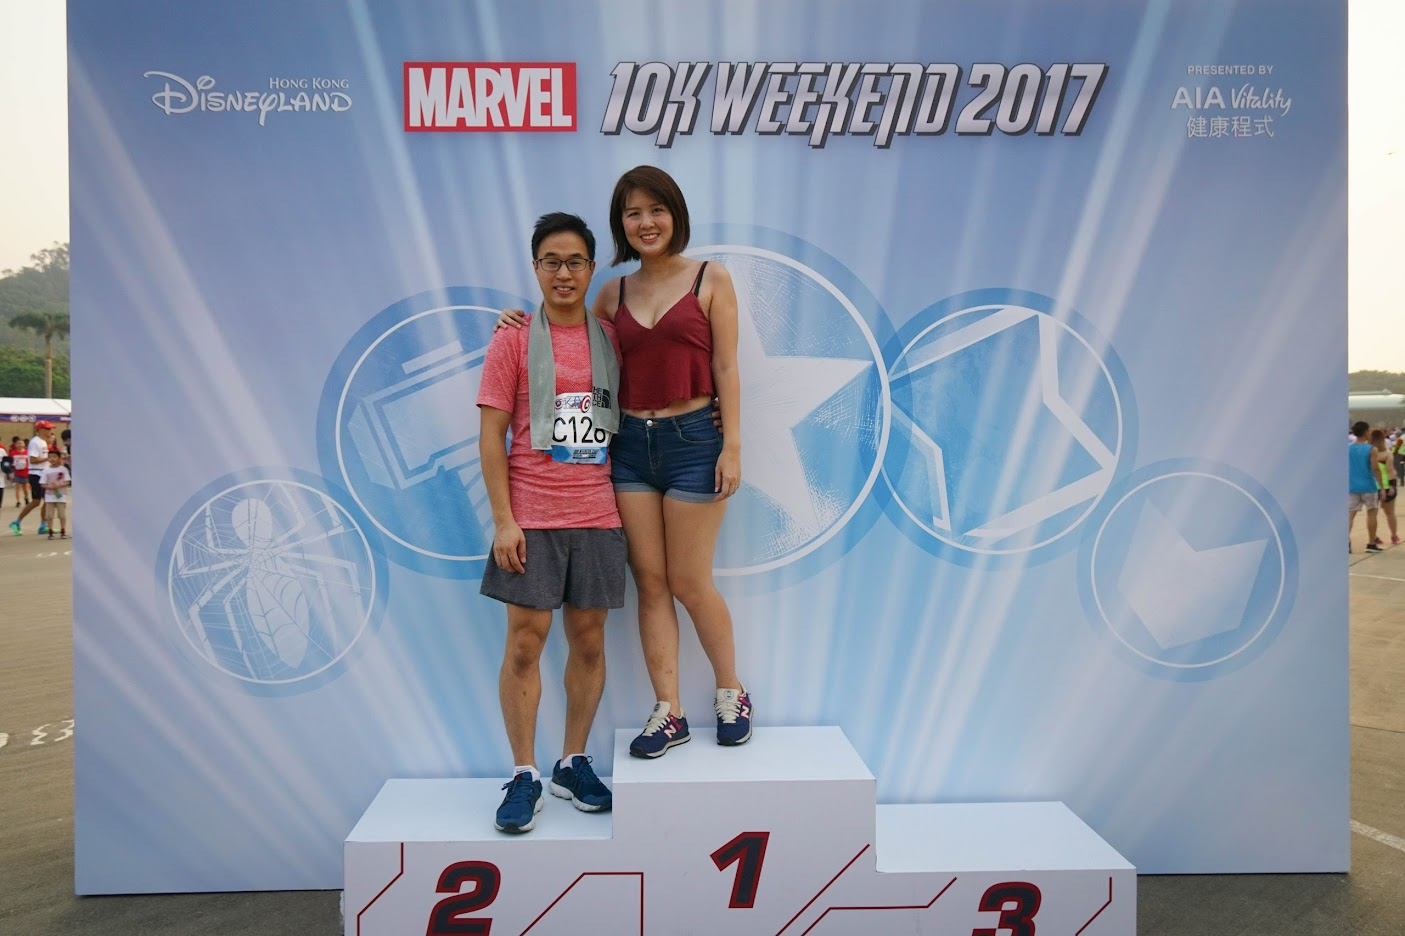 Disney 10k Weekend 2017